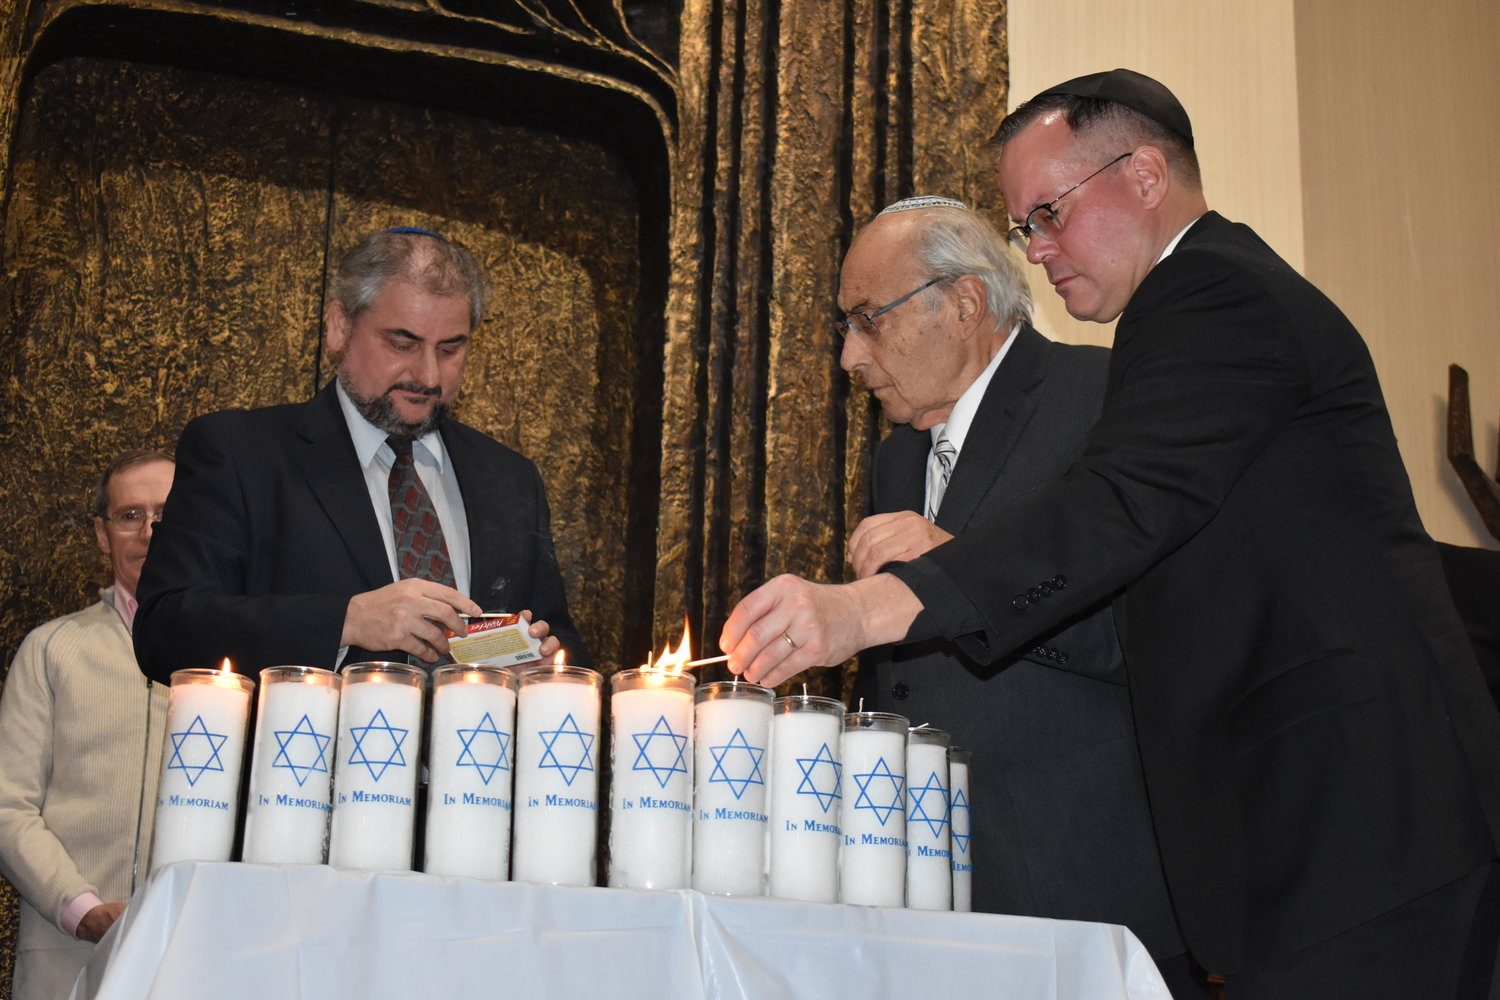 Candles were lit for each of the victims of the shooting at the Tree of Life Synagogue in Pittsburgh, from left, Rabbi Claudio Kupchick of Temple Beth El, center, Rabbi Arnold Marans of the Sephardic Temple and Father Christopher Ballard of Trinity-St. John's Episcopal Church.